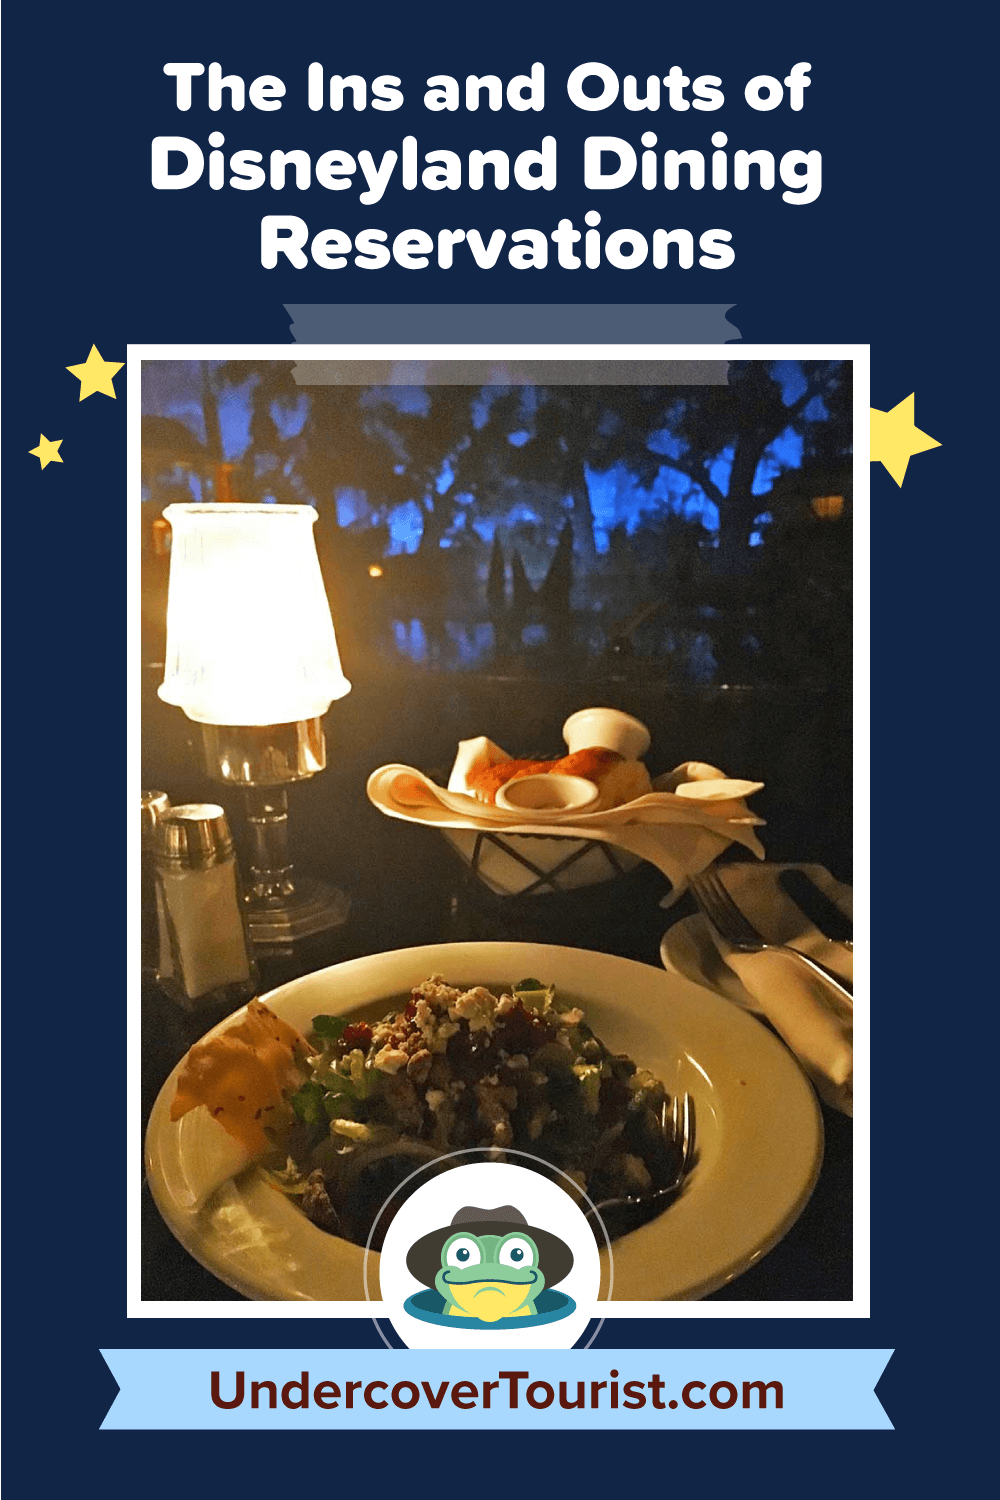 The Ins and Outs of Disneyland Dining Reservations - Pinterest